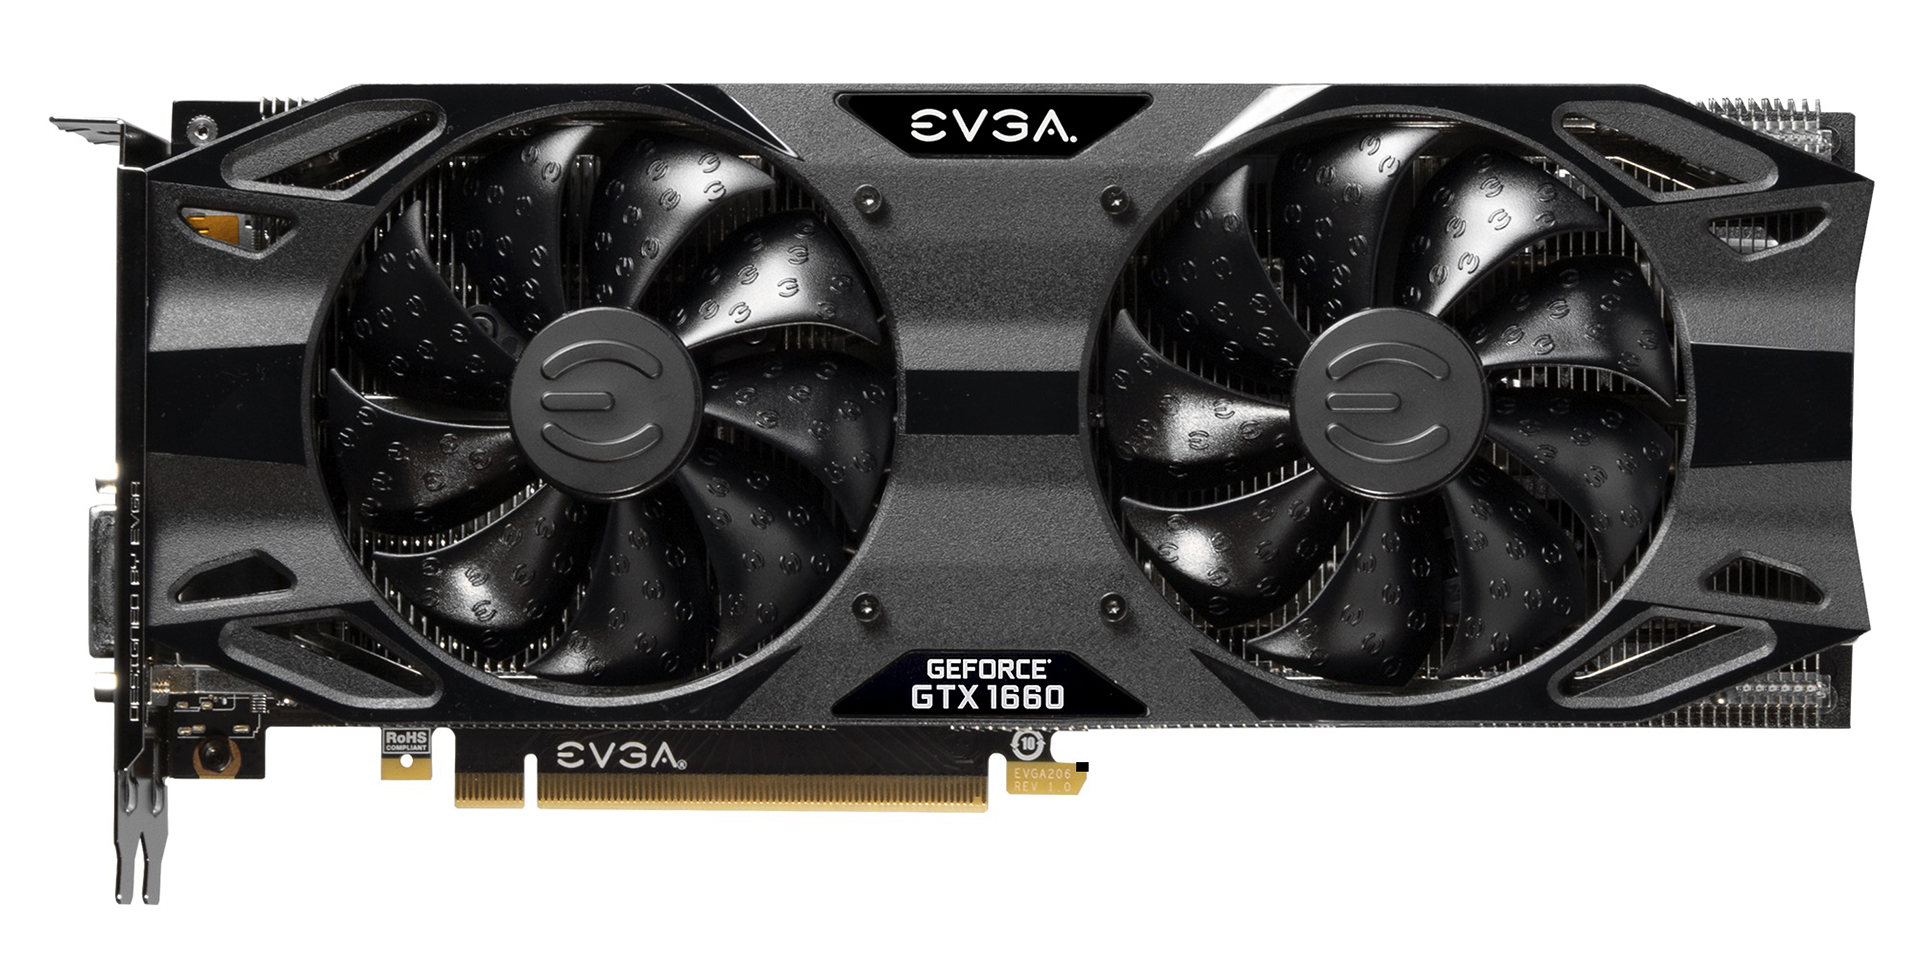 Review: EVGA GeForce GTX 1660 XC Ultra Gaming - Graphics